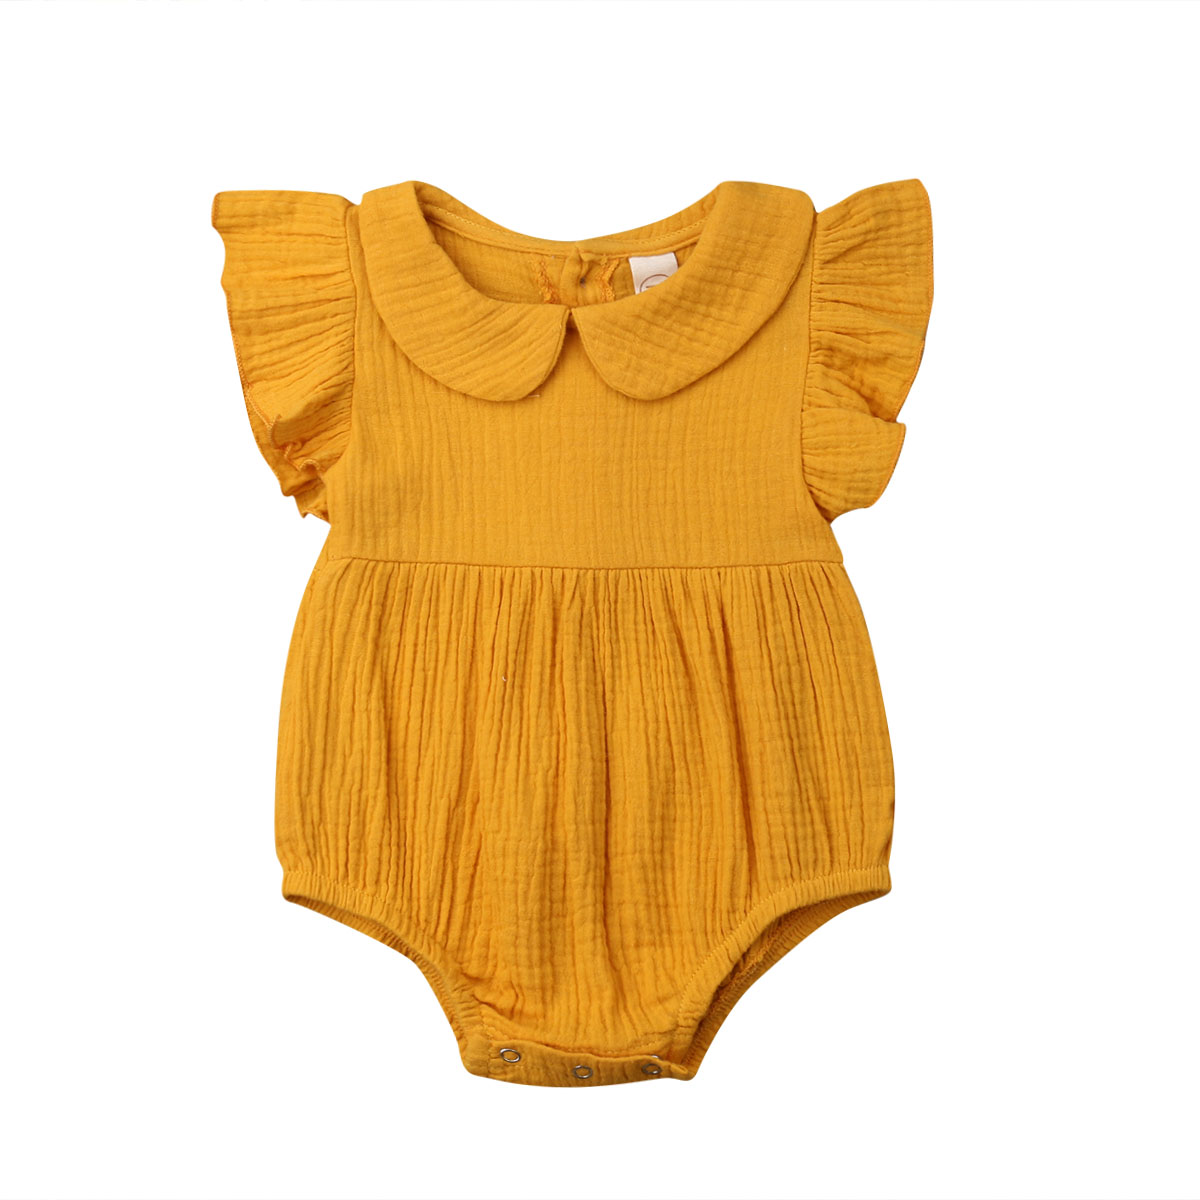 0-24M Cute Newborn Baby Girl Ruffles Sleeveless Peter Pan Collar Cotton   Romper   Jumpsuit Outfits Sunsuit Clothes Yellow